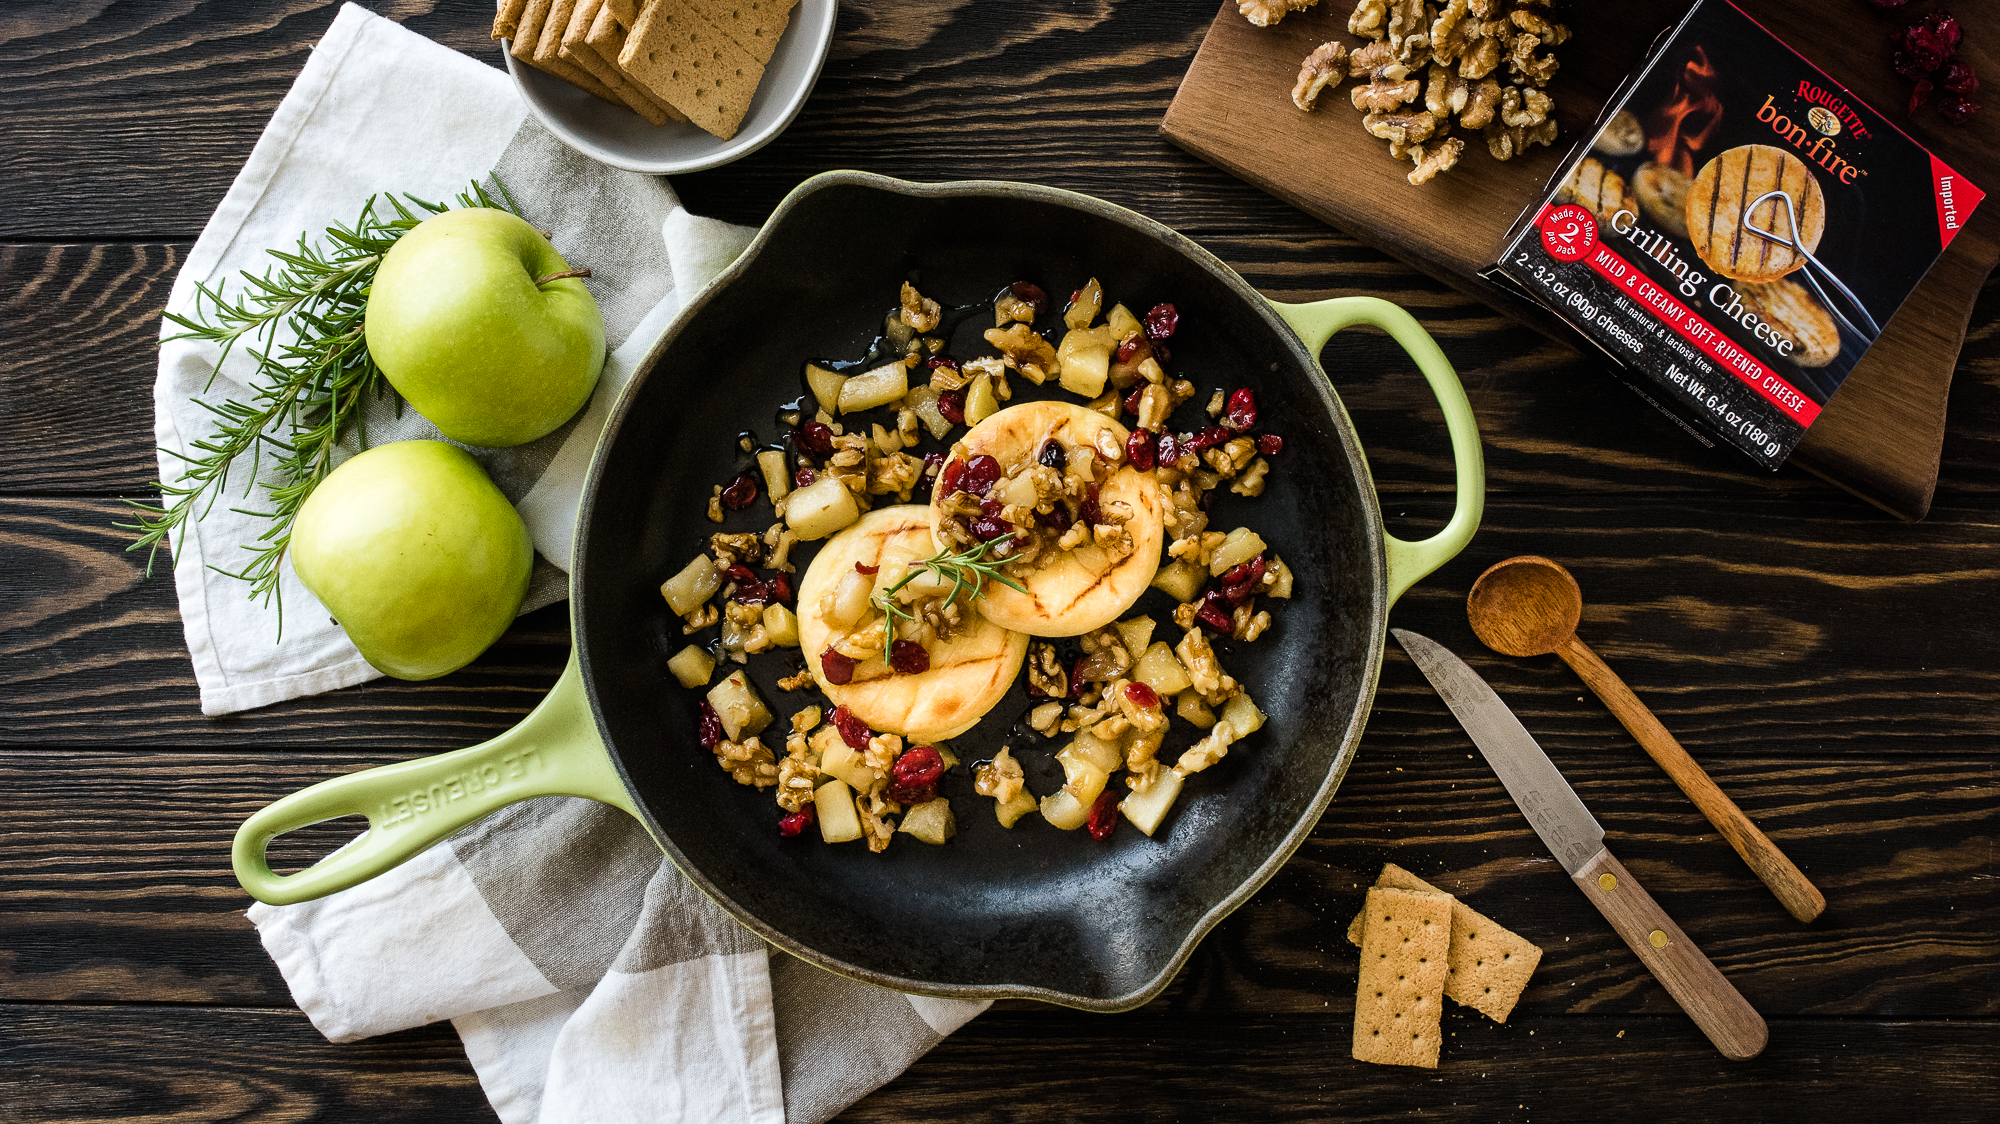 Grilling Cheese and Cranberry Apple Skillet Crisp -